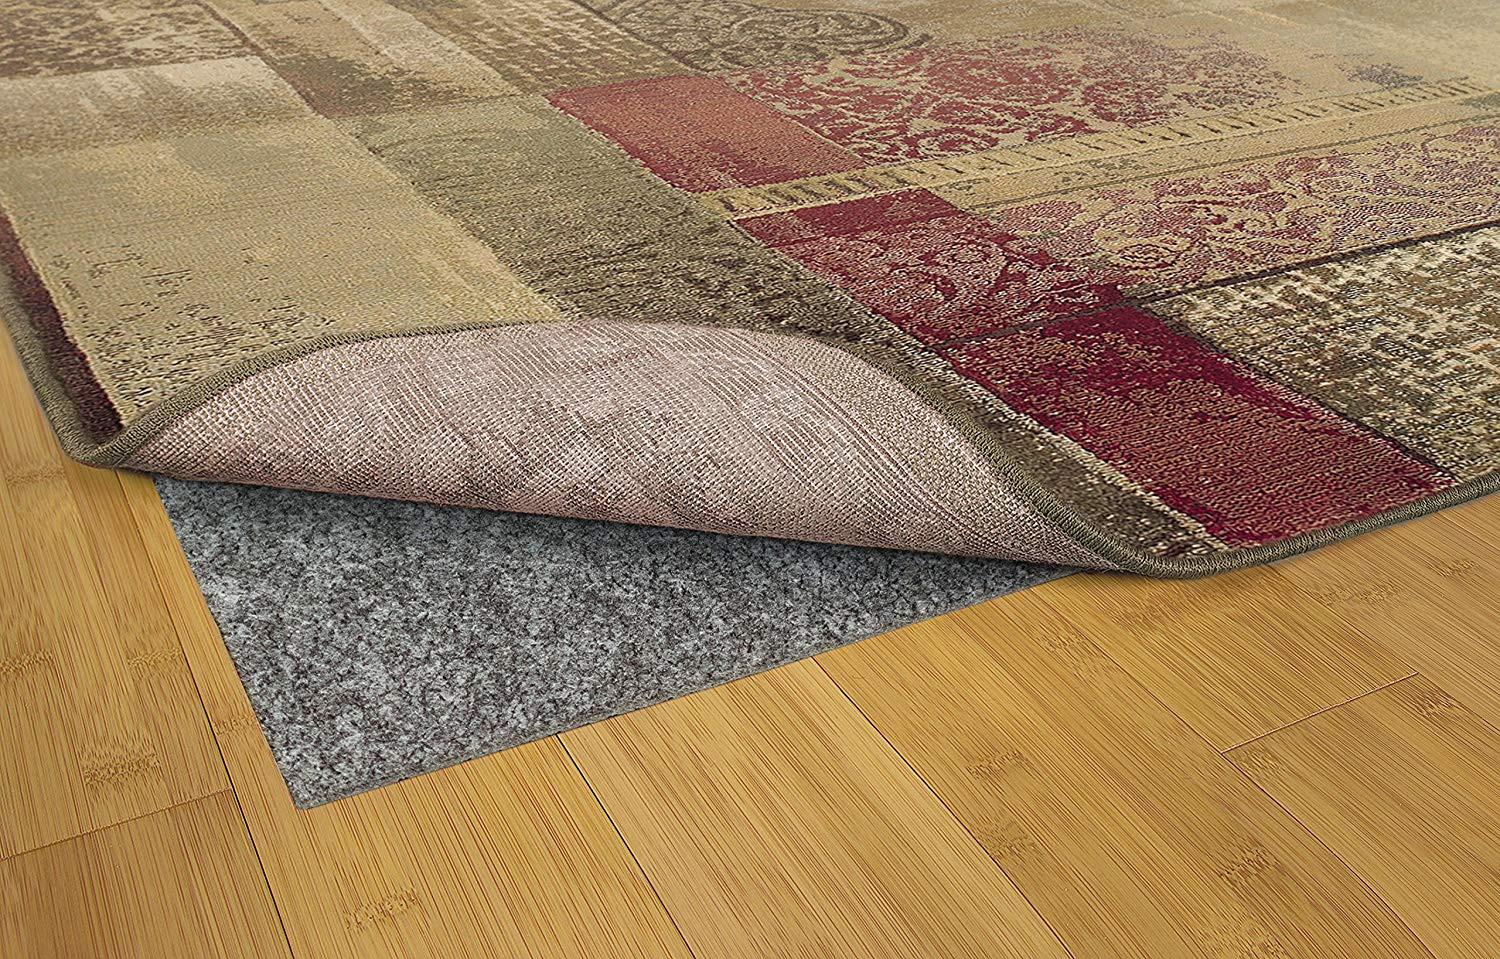 Carpet Pad for Hardwood Floors Of Amazon Com Granville Rugs All Surface Non Skid area Rug Pad for 9 In Amazon Com Granville Rugs All Surface Non Skid area Rug Pad for 9 Feet X 12 Feet Rug Kitchen Dining